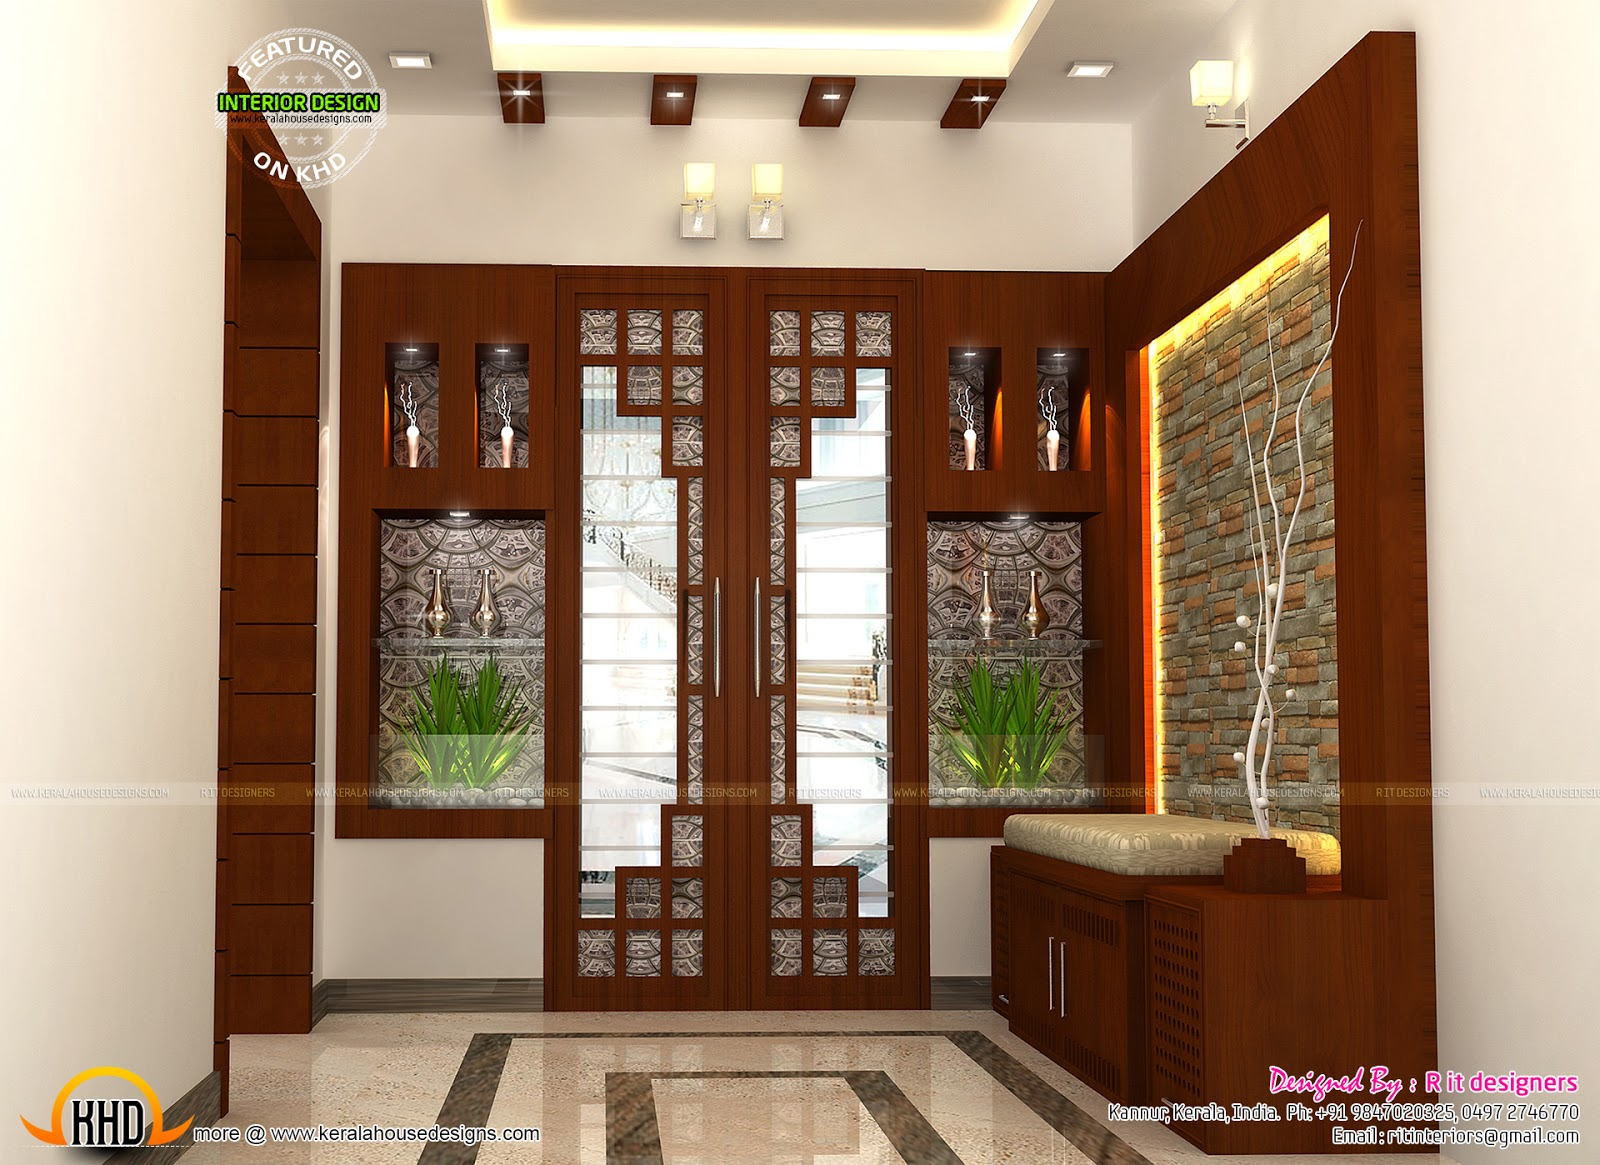 interior decors by r it designers kerala home design and floor plans